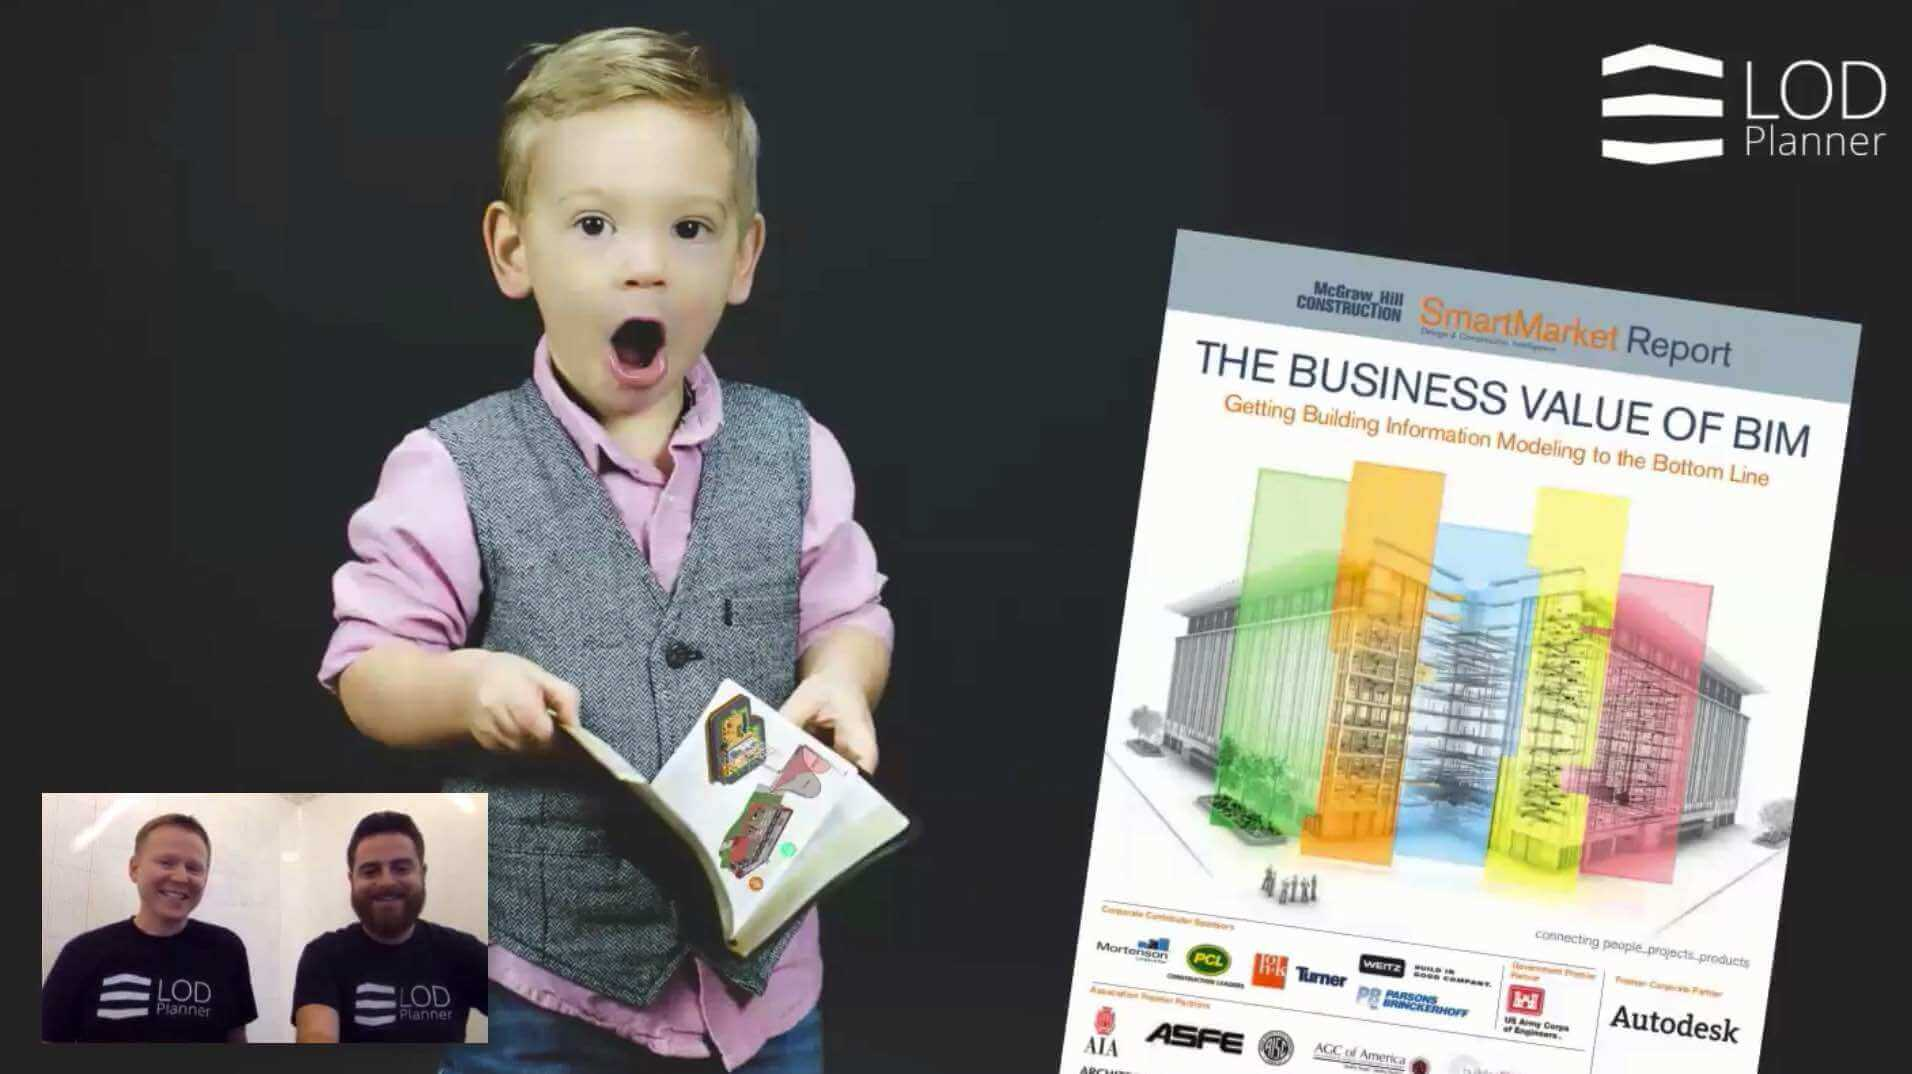 Owners finding out about BIM and asking for BIM